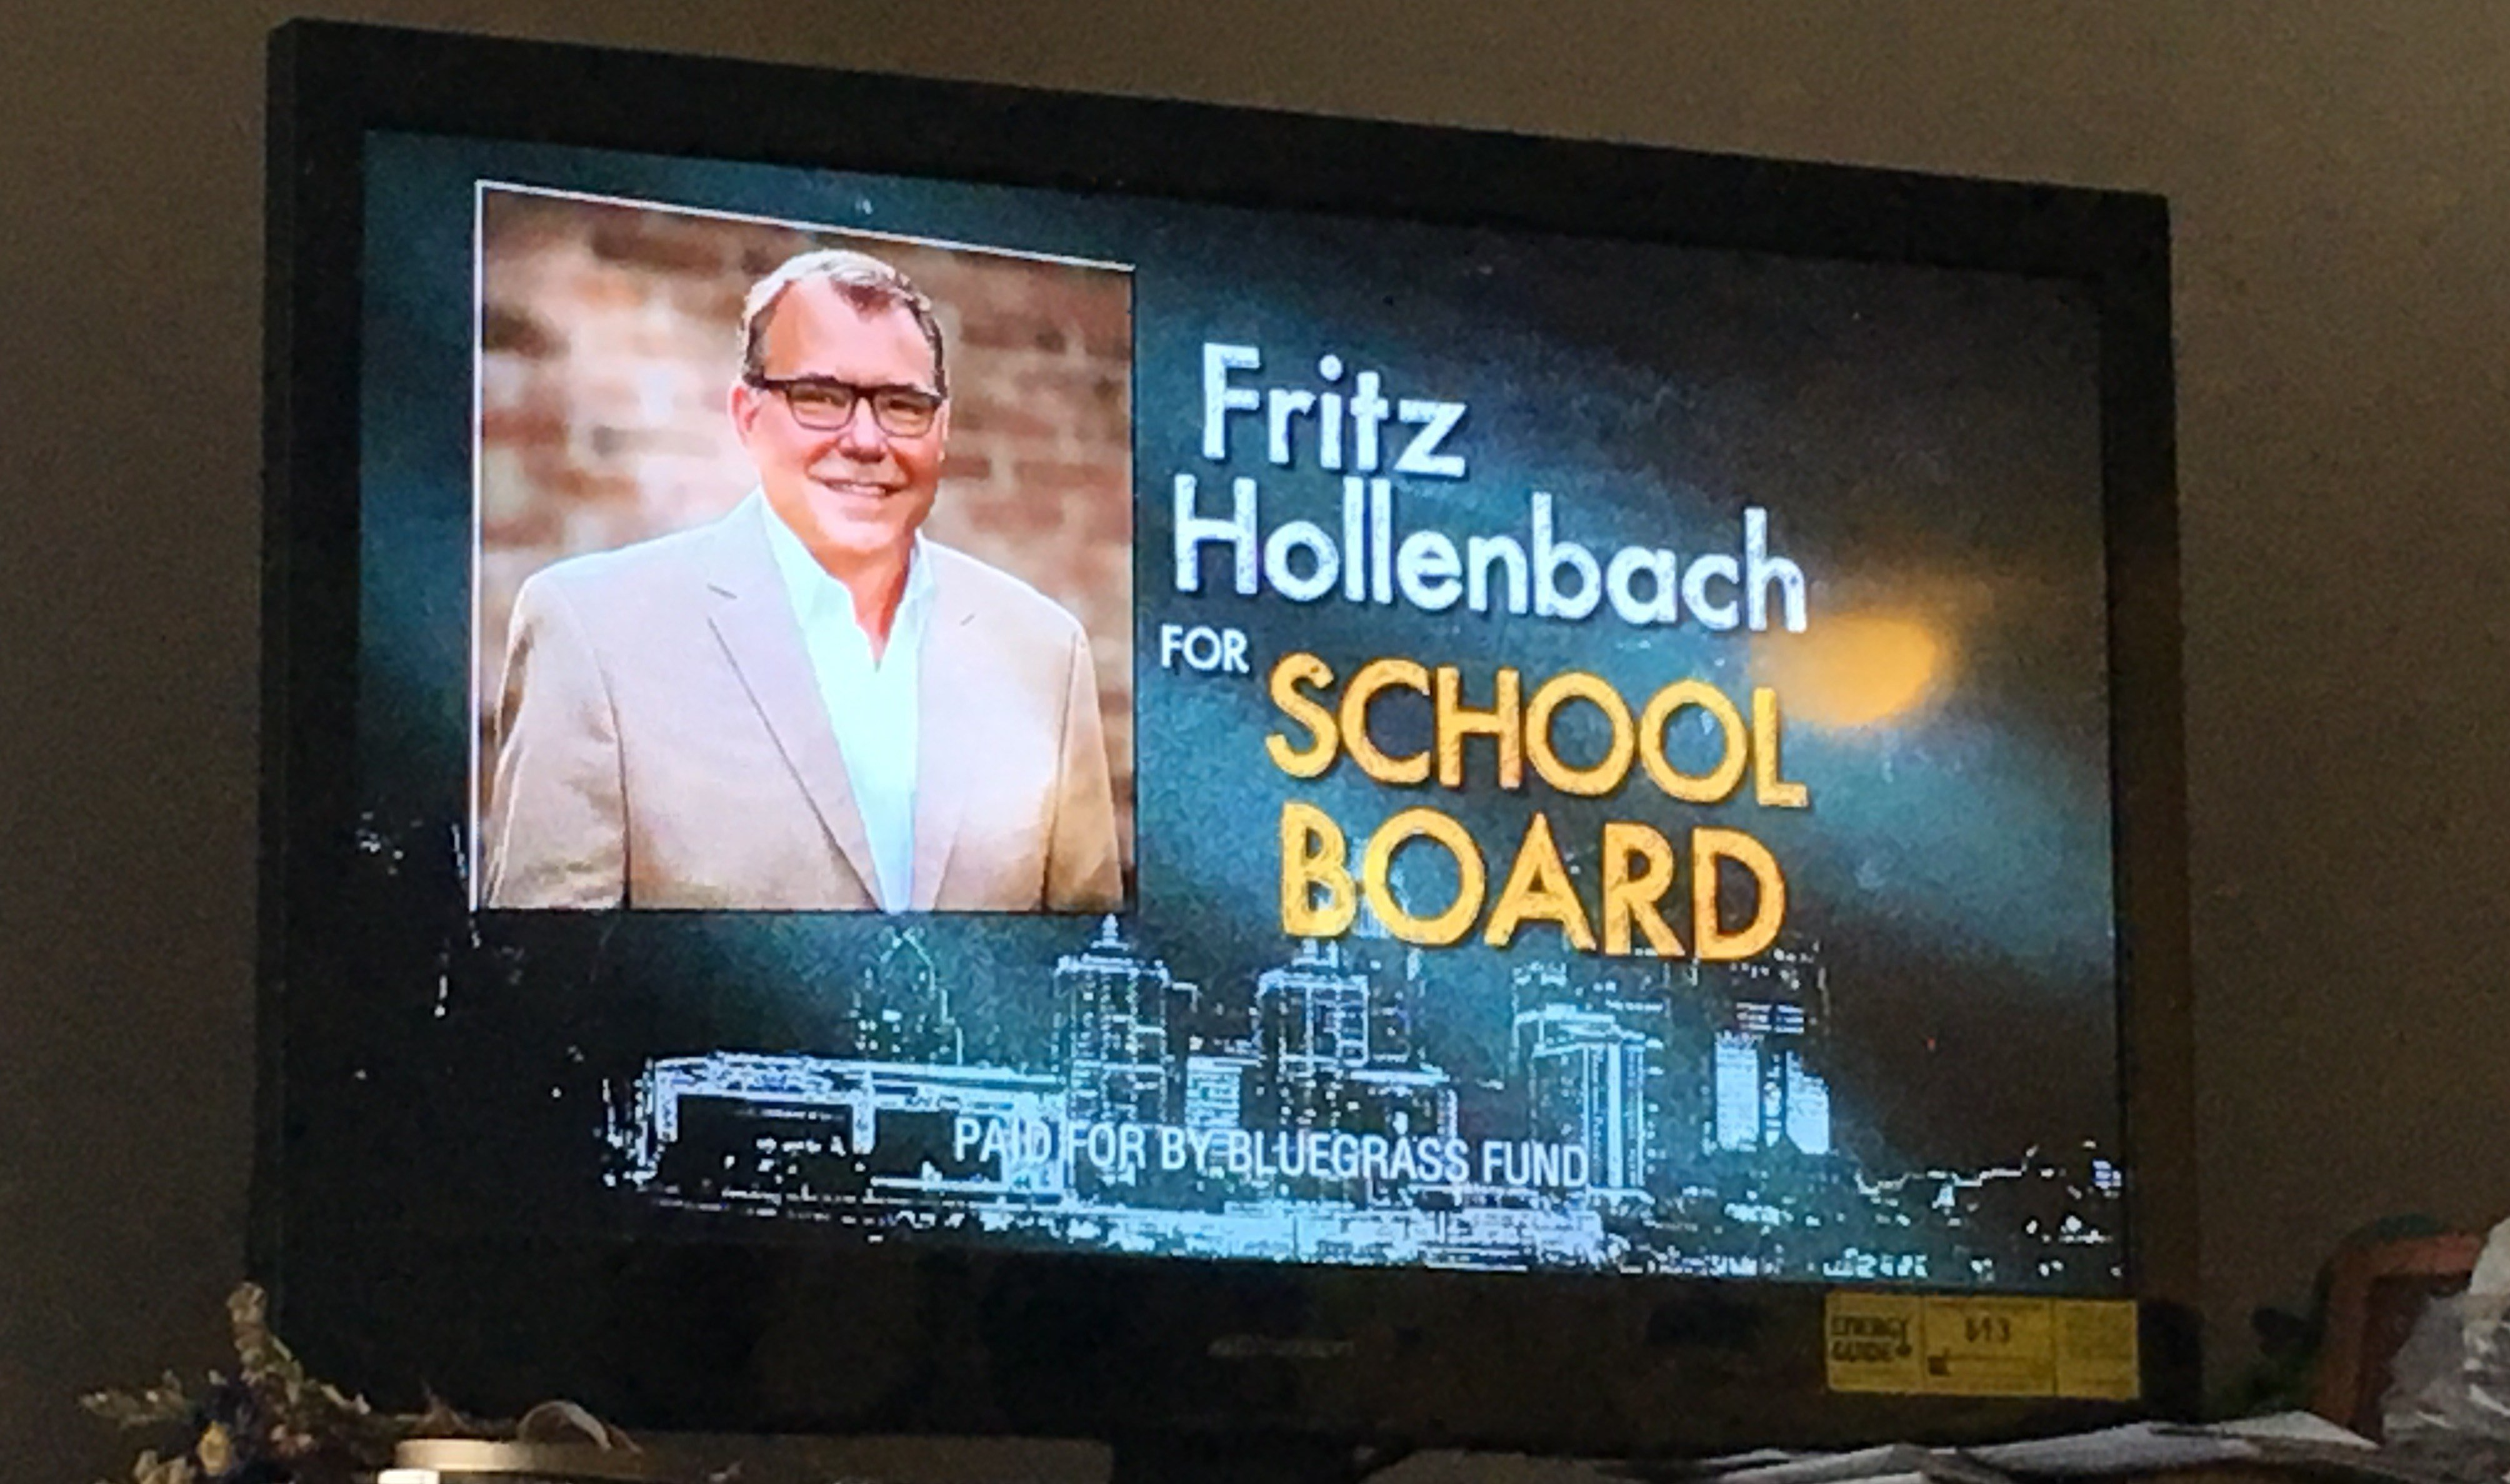 TV ad for Fritz Hollenbach paid for Bluegrass Fund